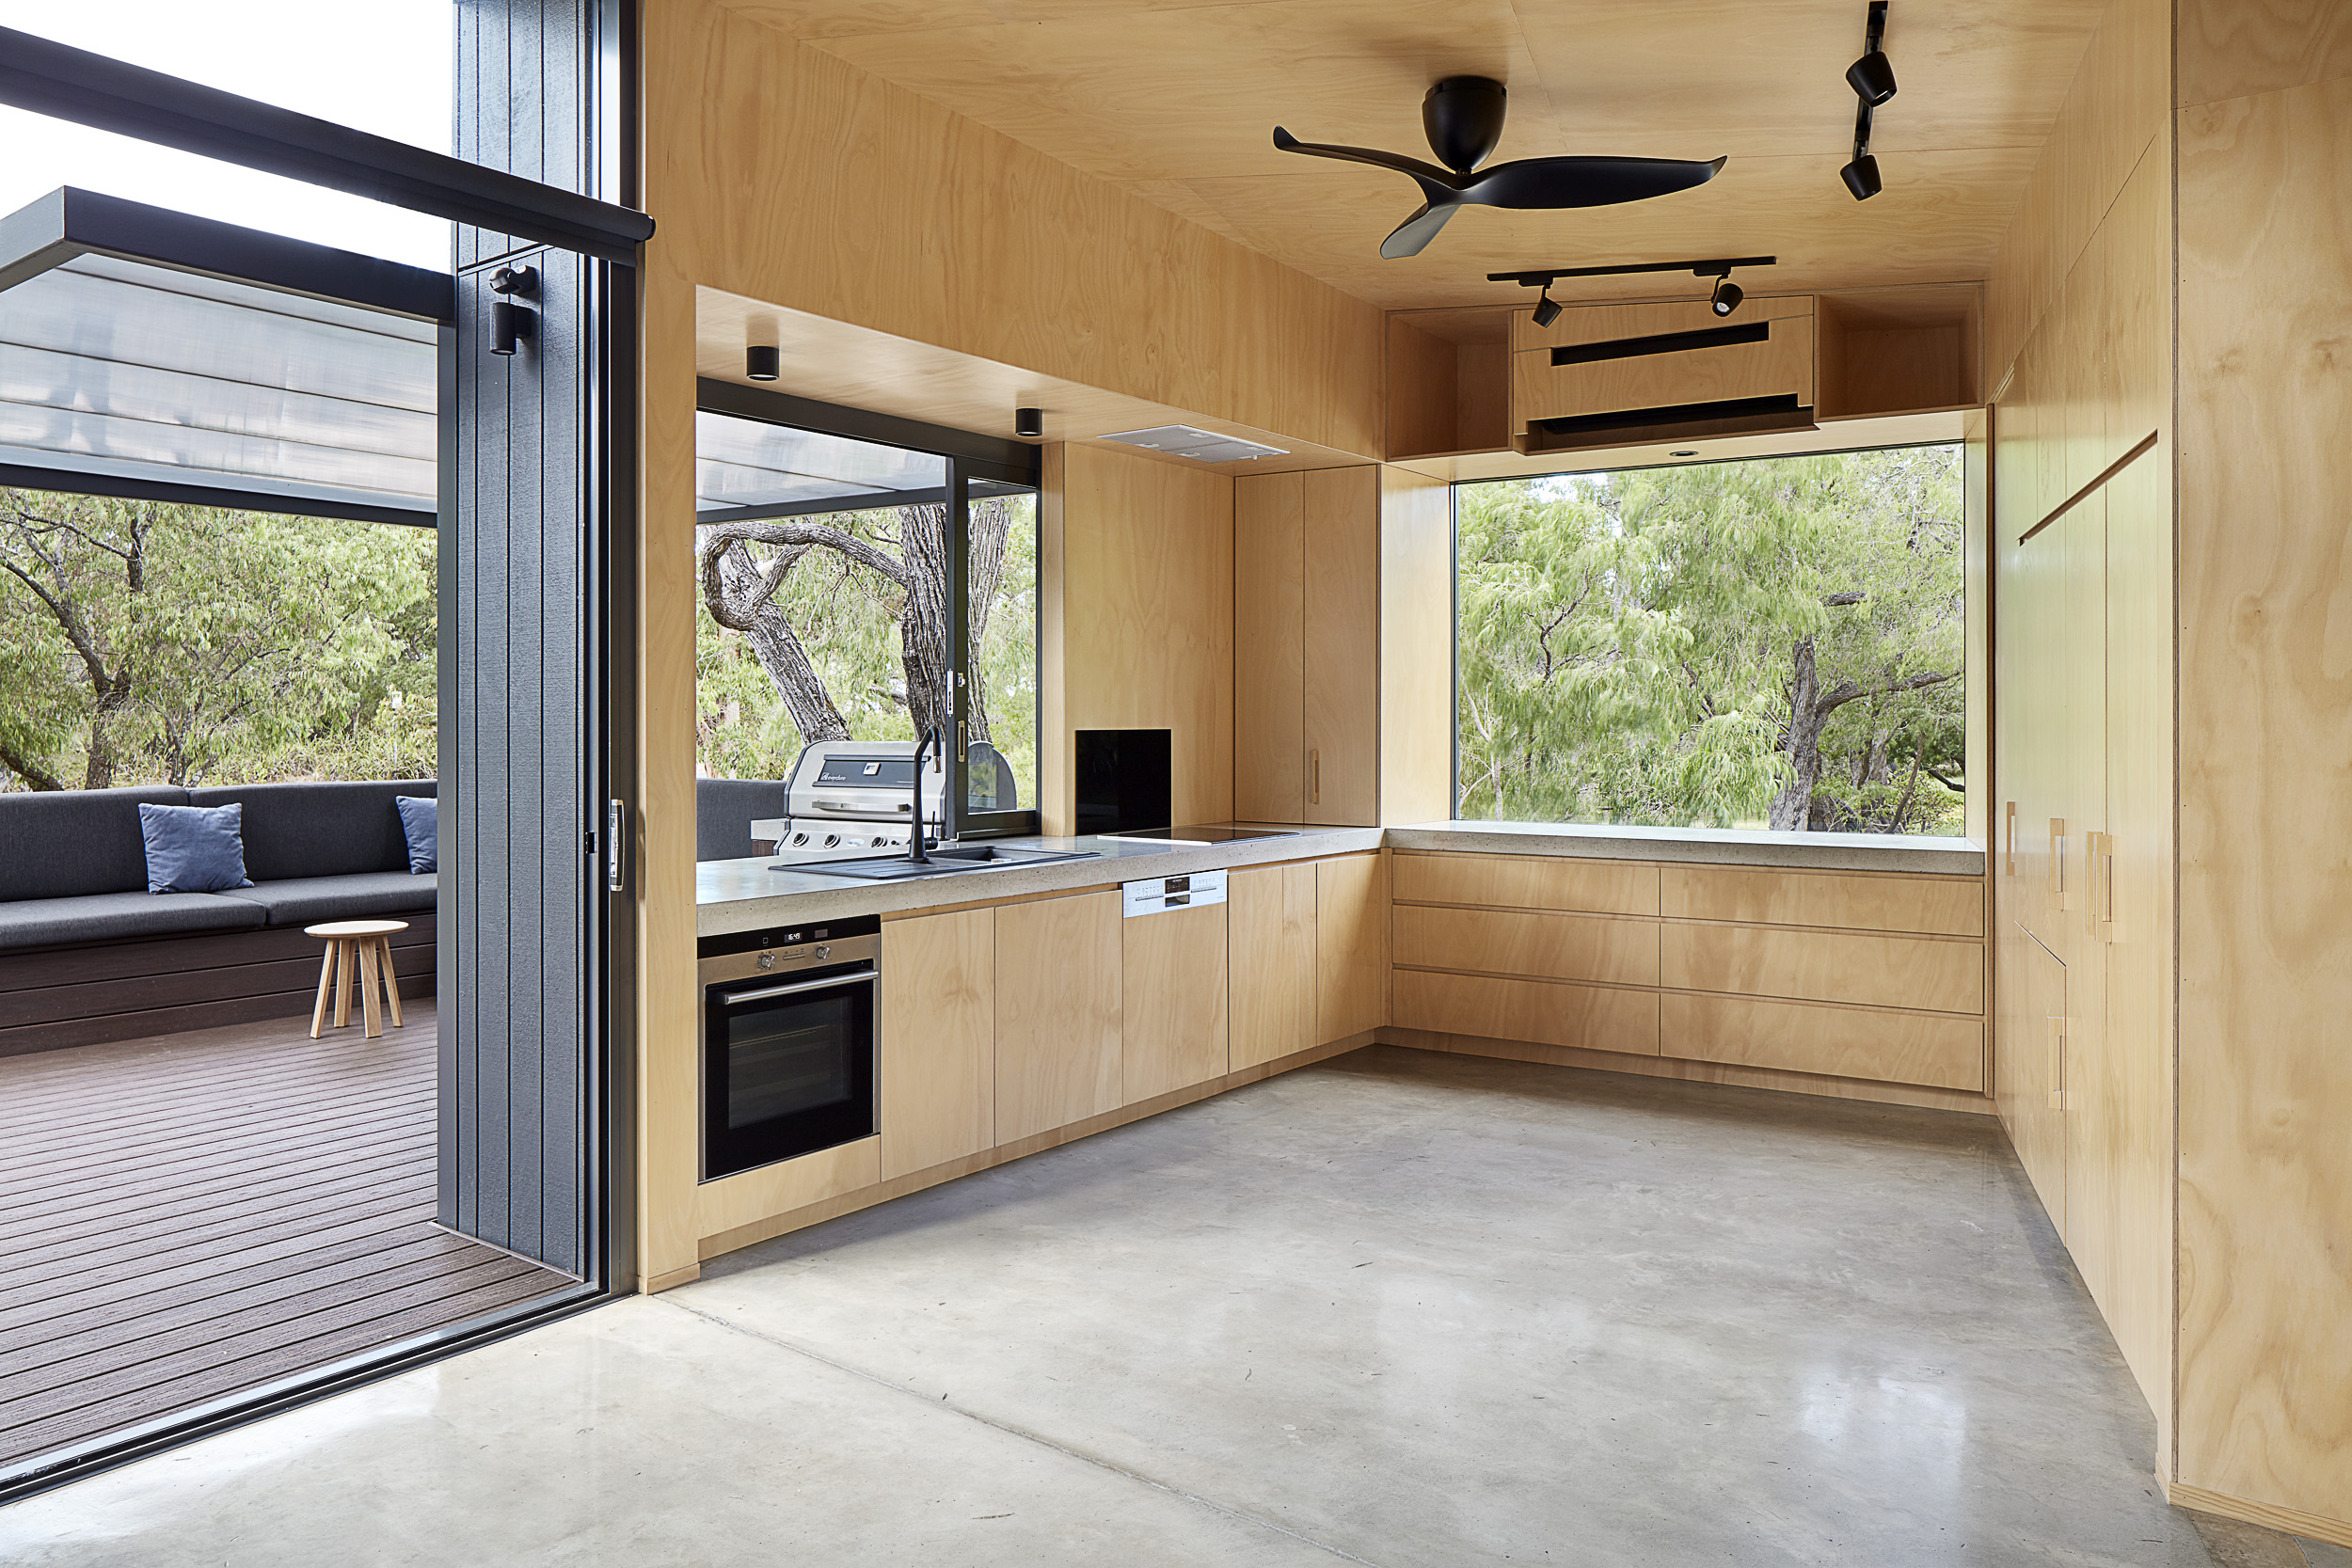 82 Degrees By Meaghan White Architect Local Australian Design And Interiors Quindalup, Wa Image 10